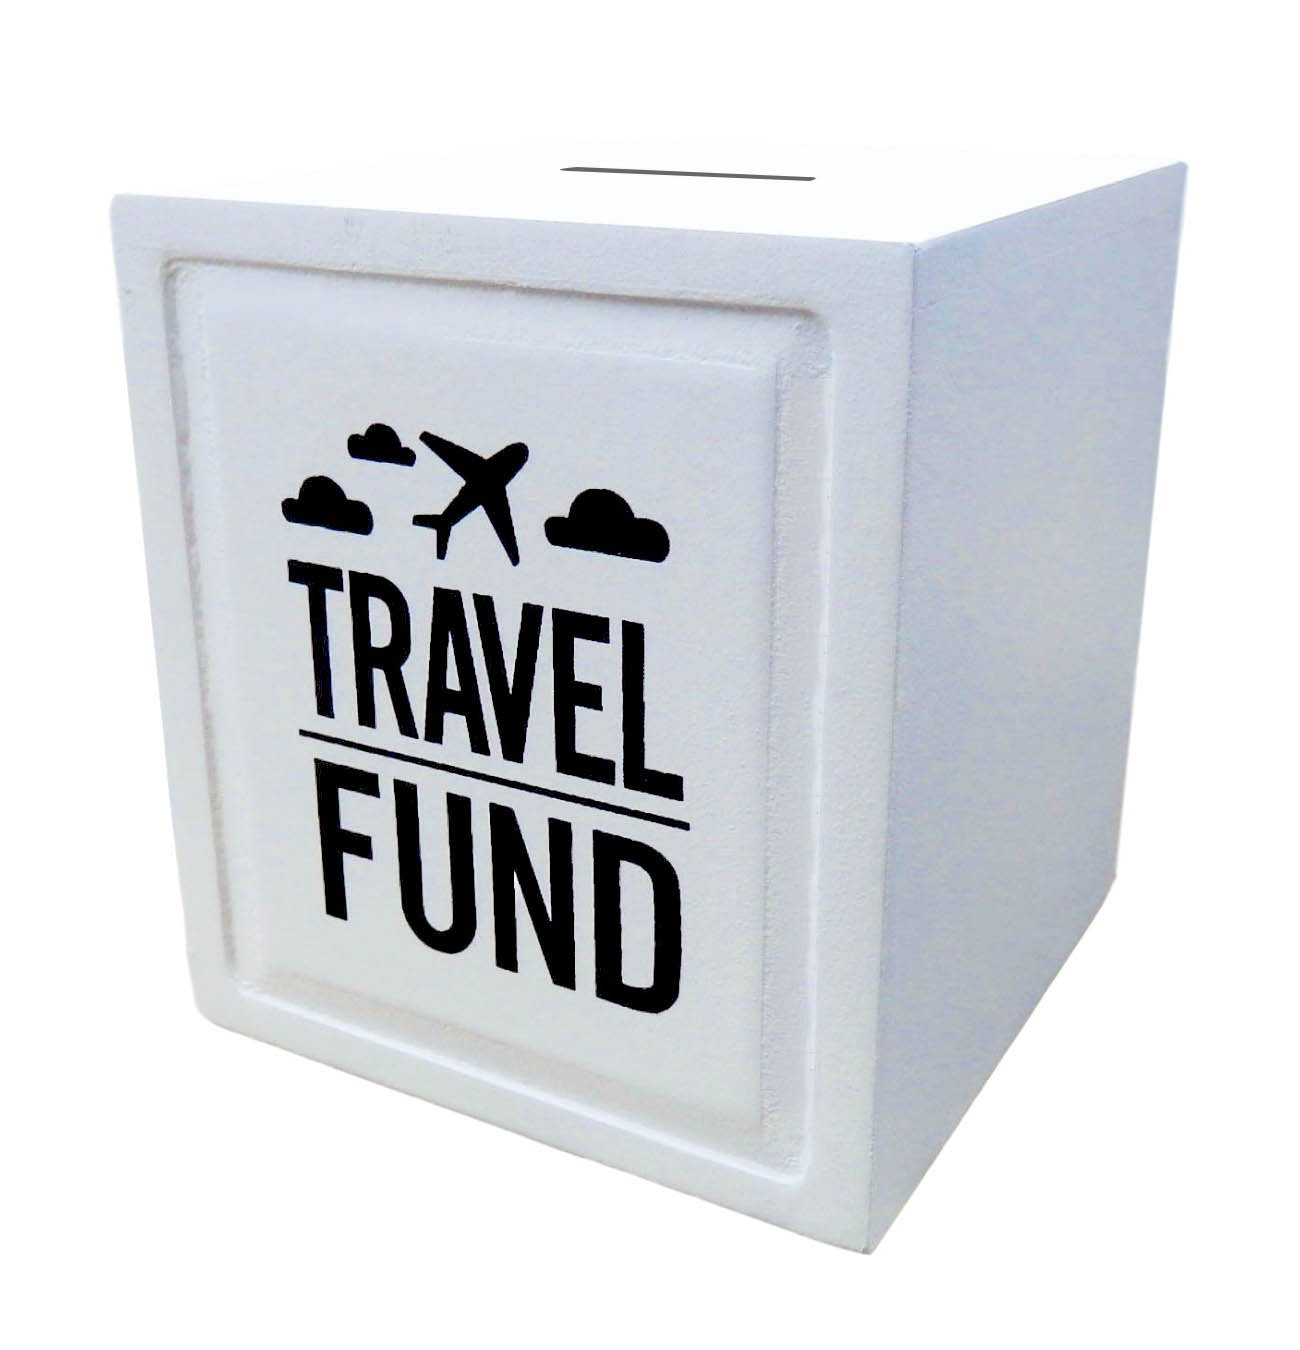 Sterling James Co. Travel Fund Piggy Bank - Wedding and Travel Gift Ideas - Money Box - House Warming and Retirement Gifts for Travelers by Sterling James Co.